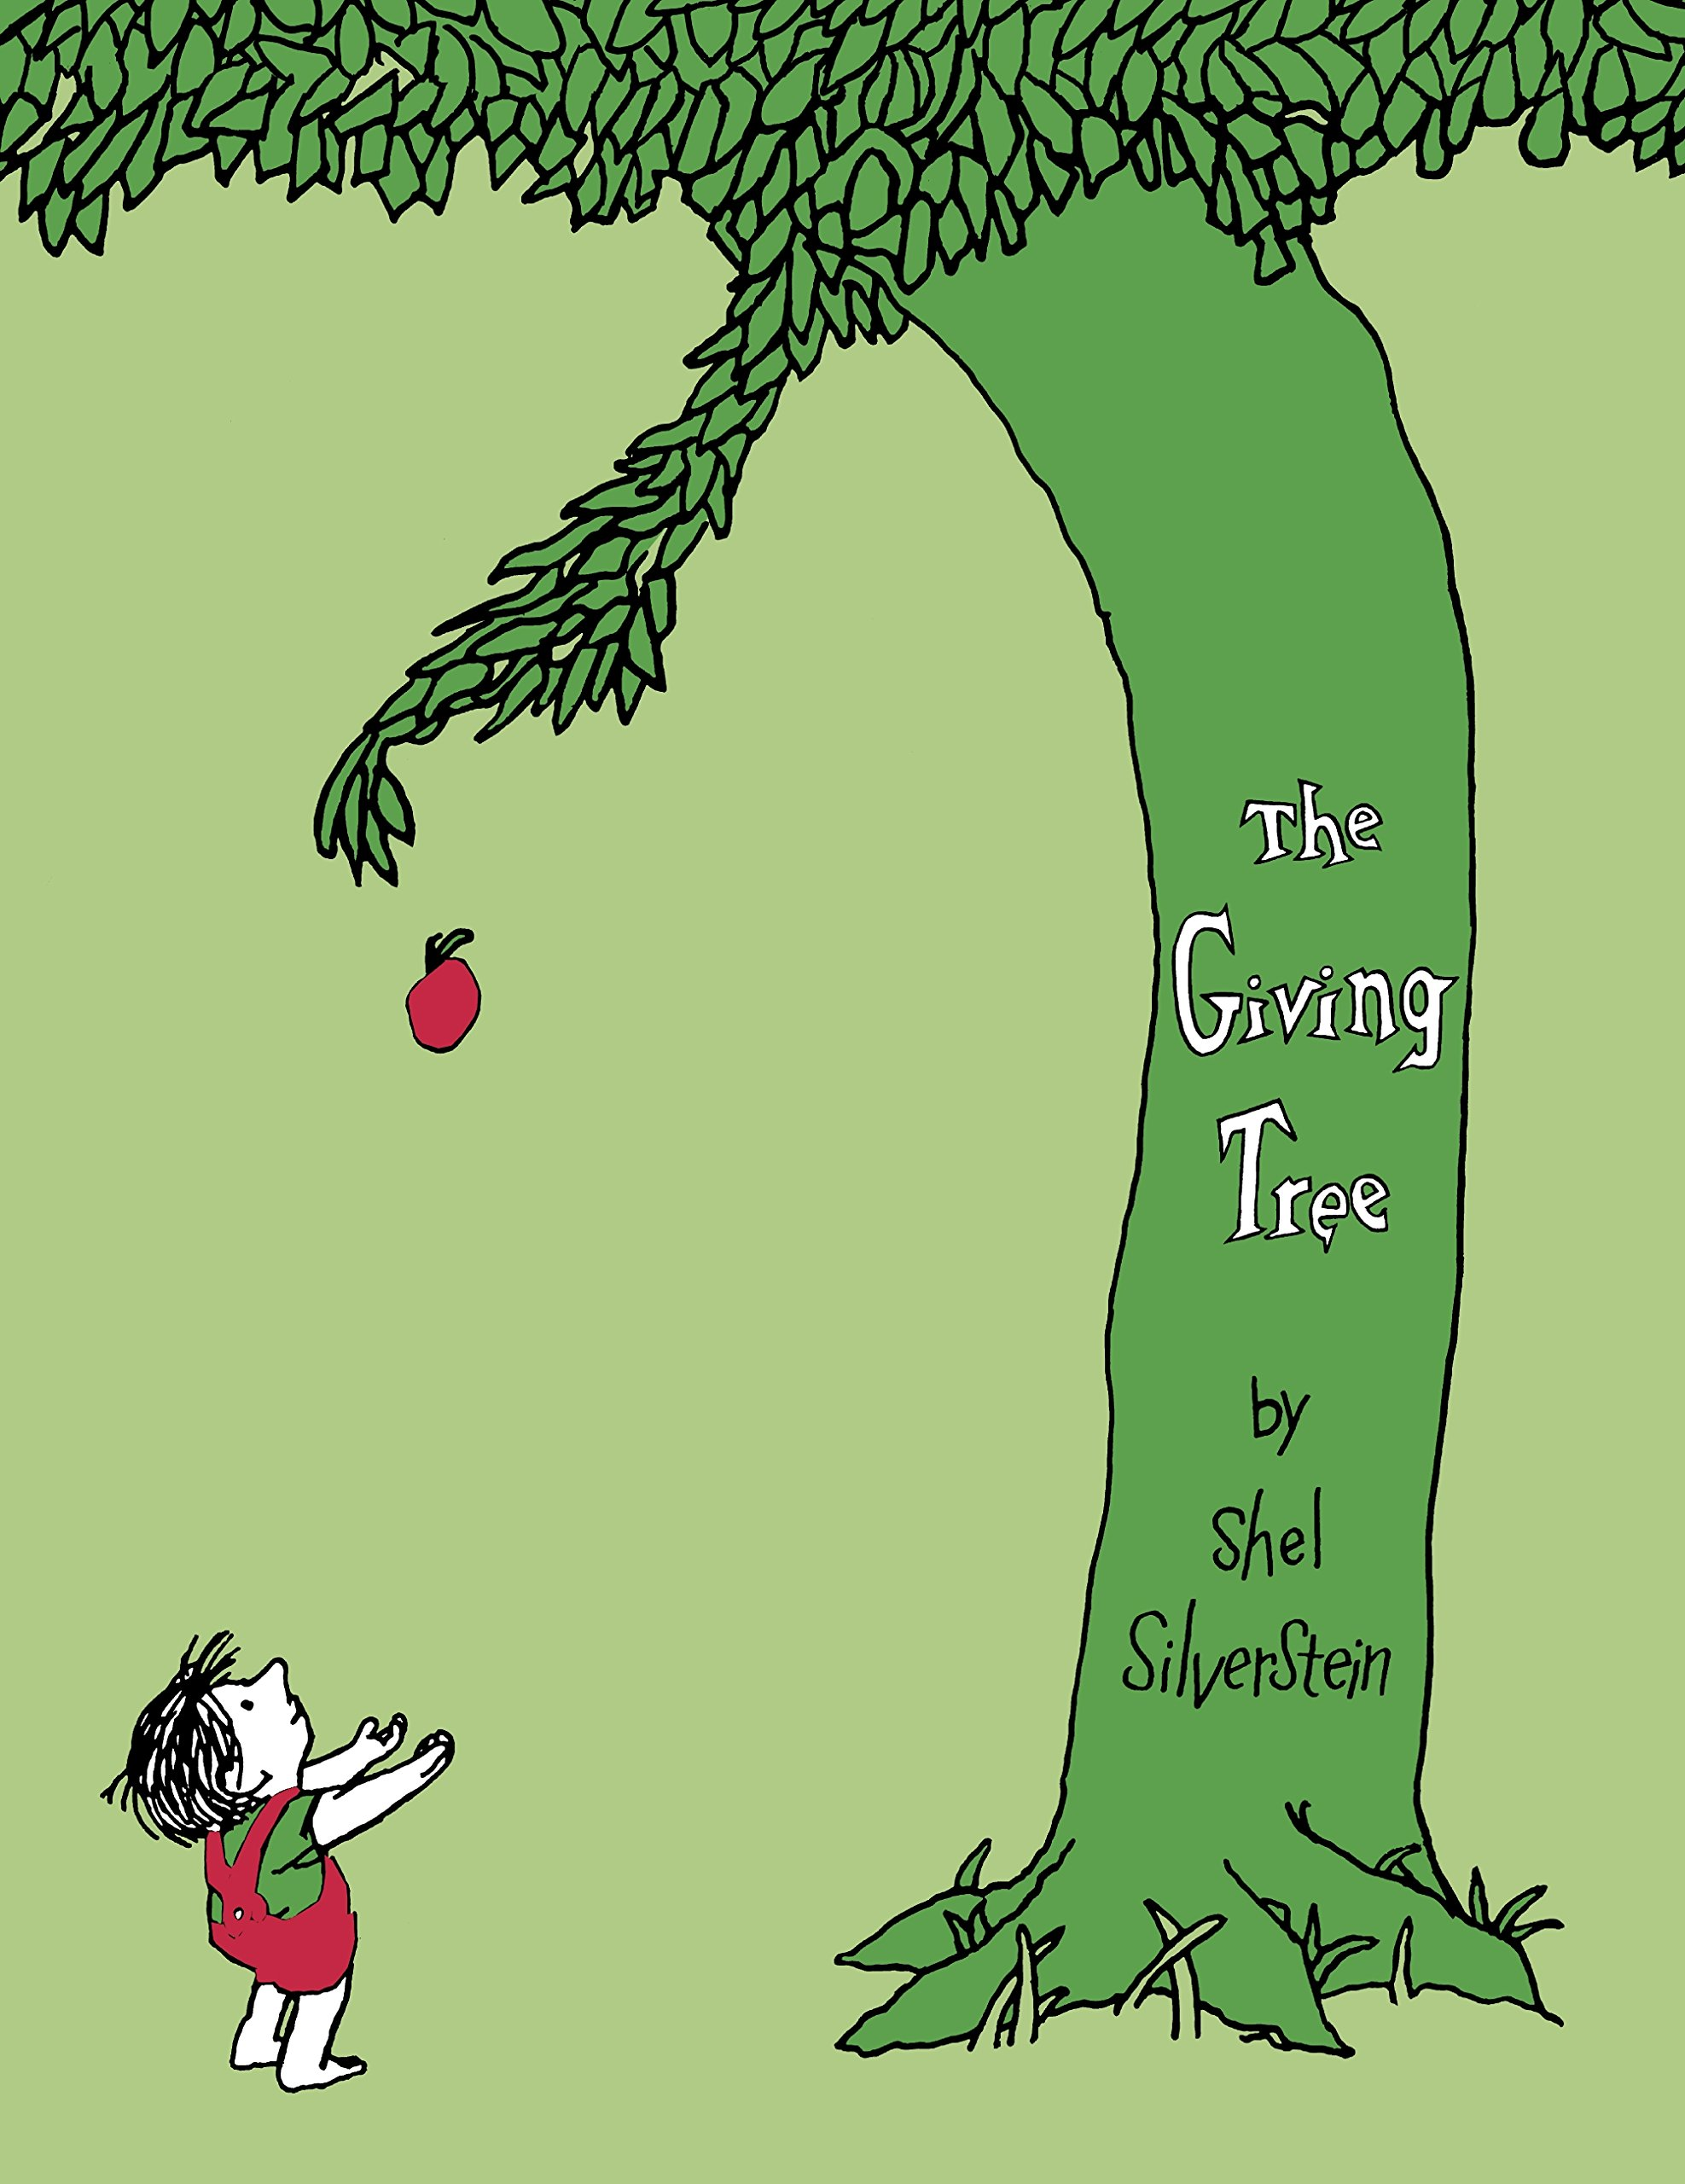 5. 'The Giving Tree'